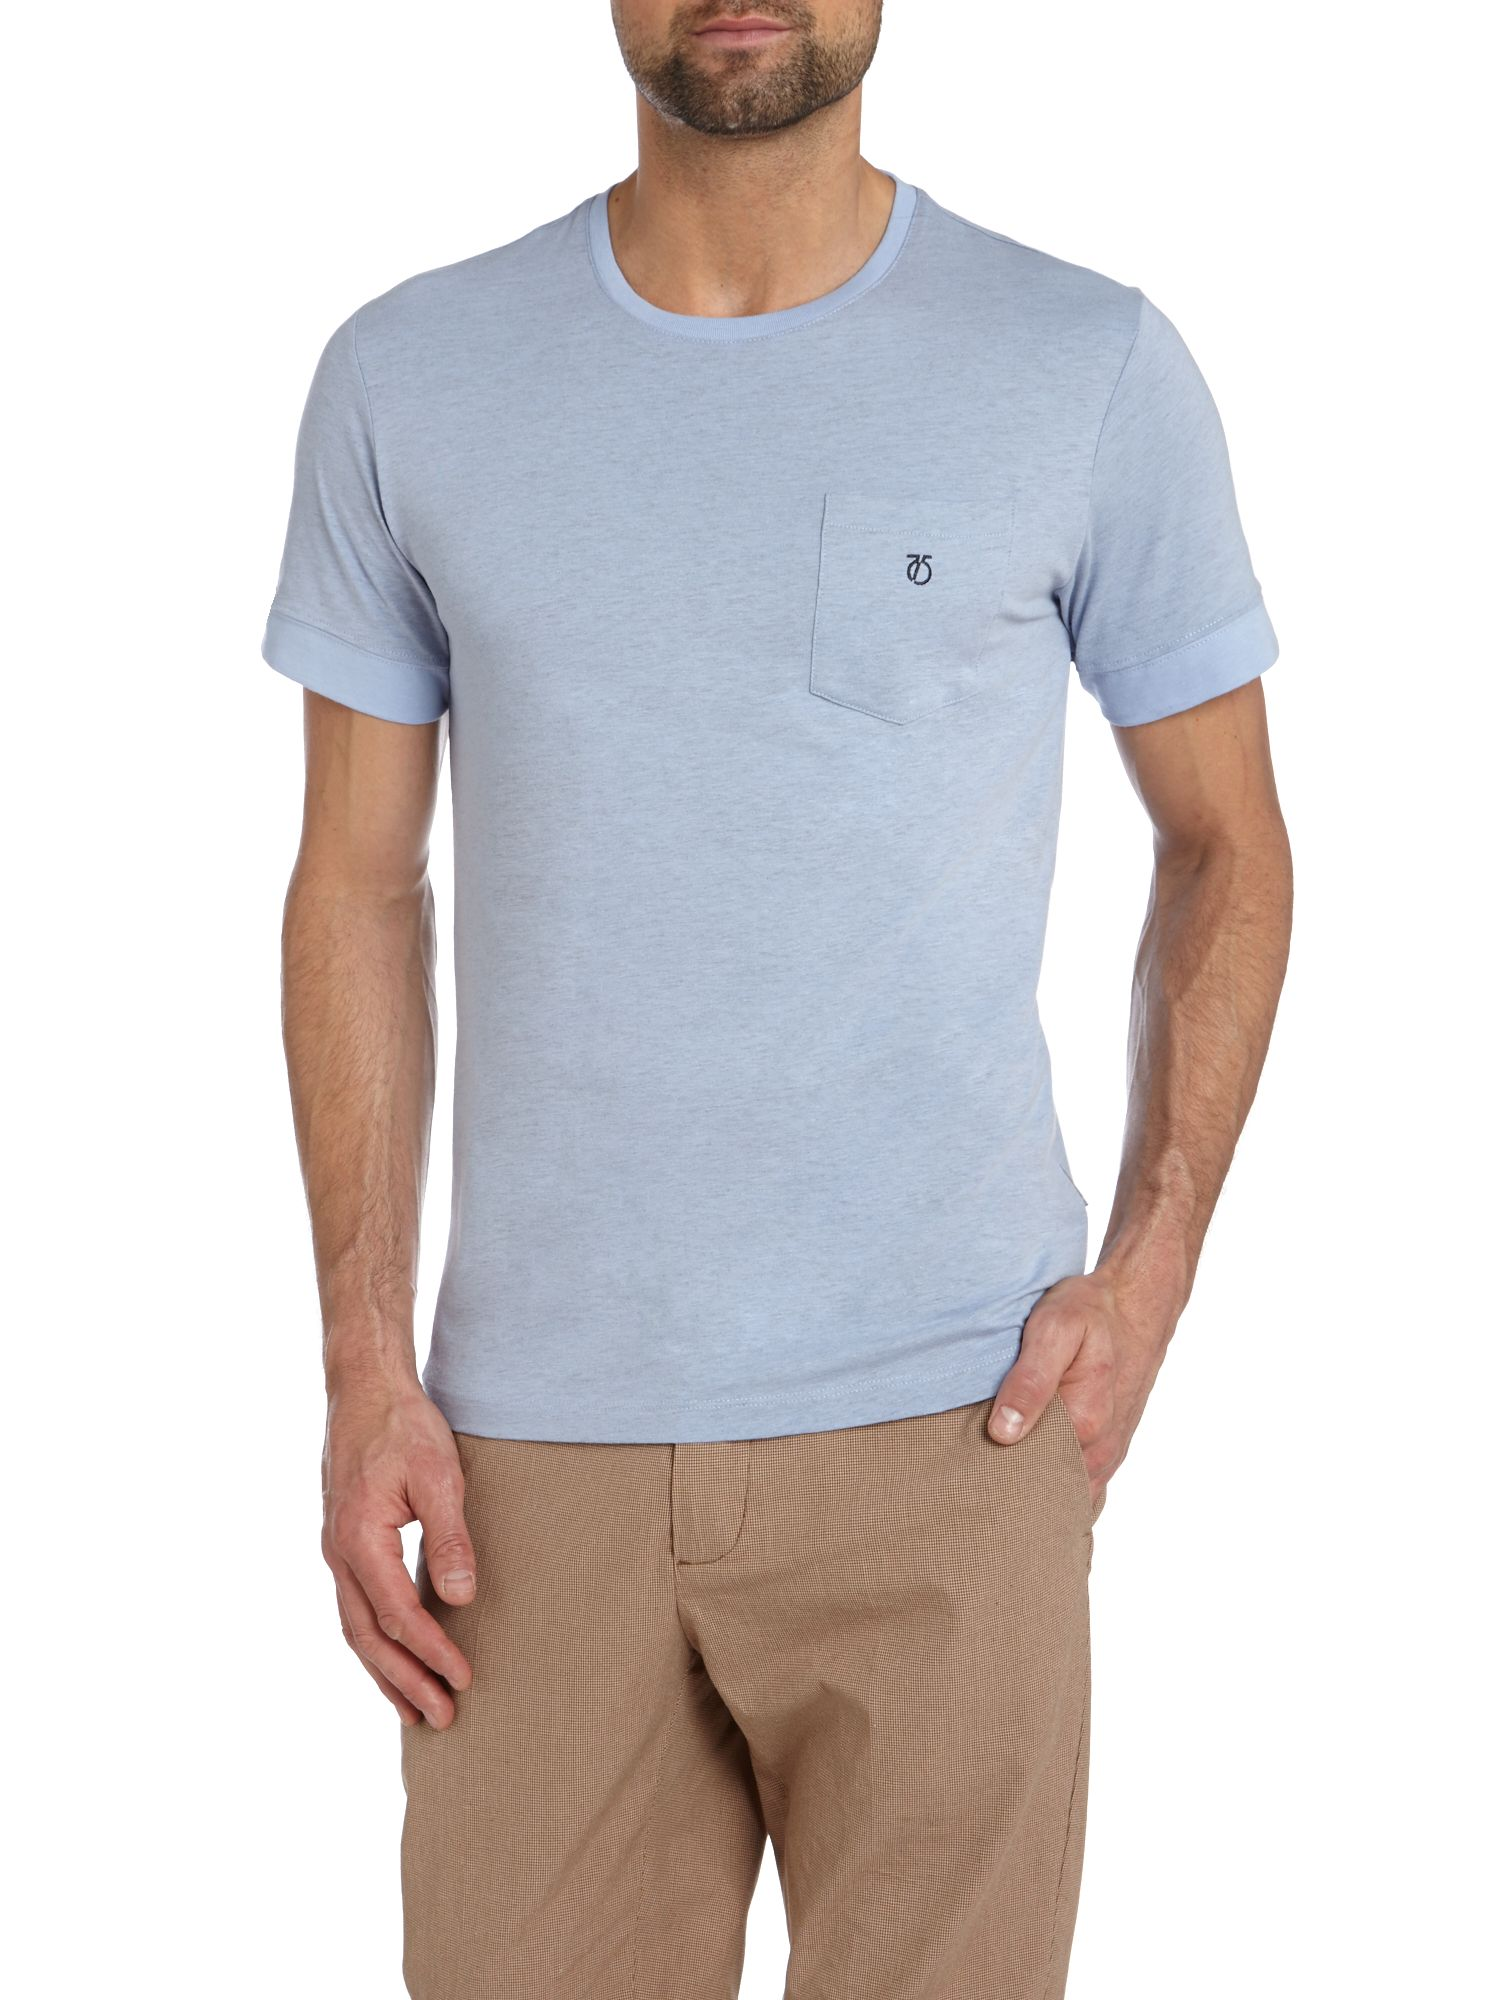 Lazo plain t-shirt